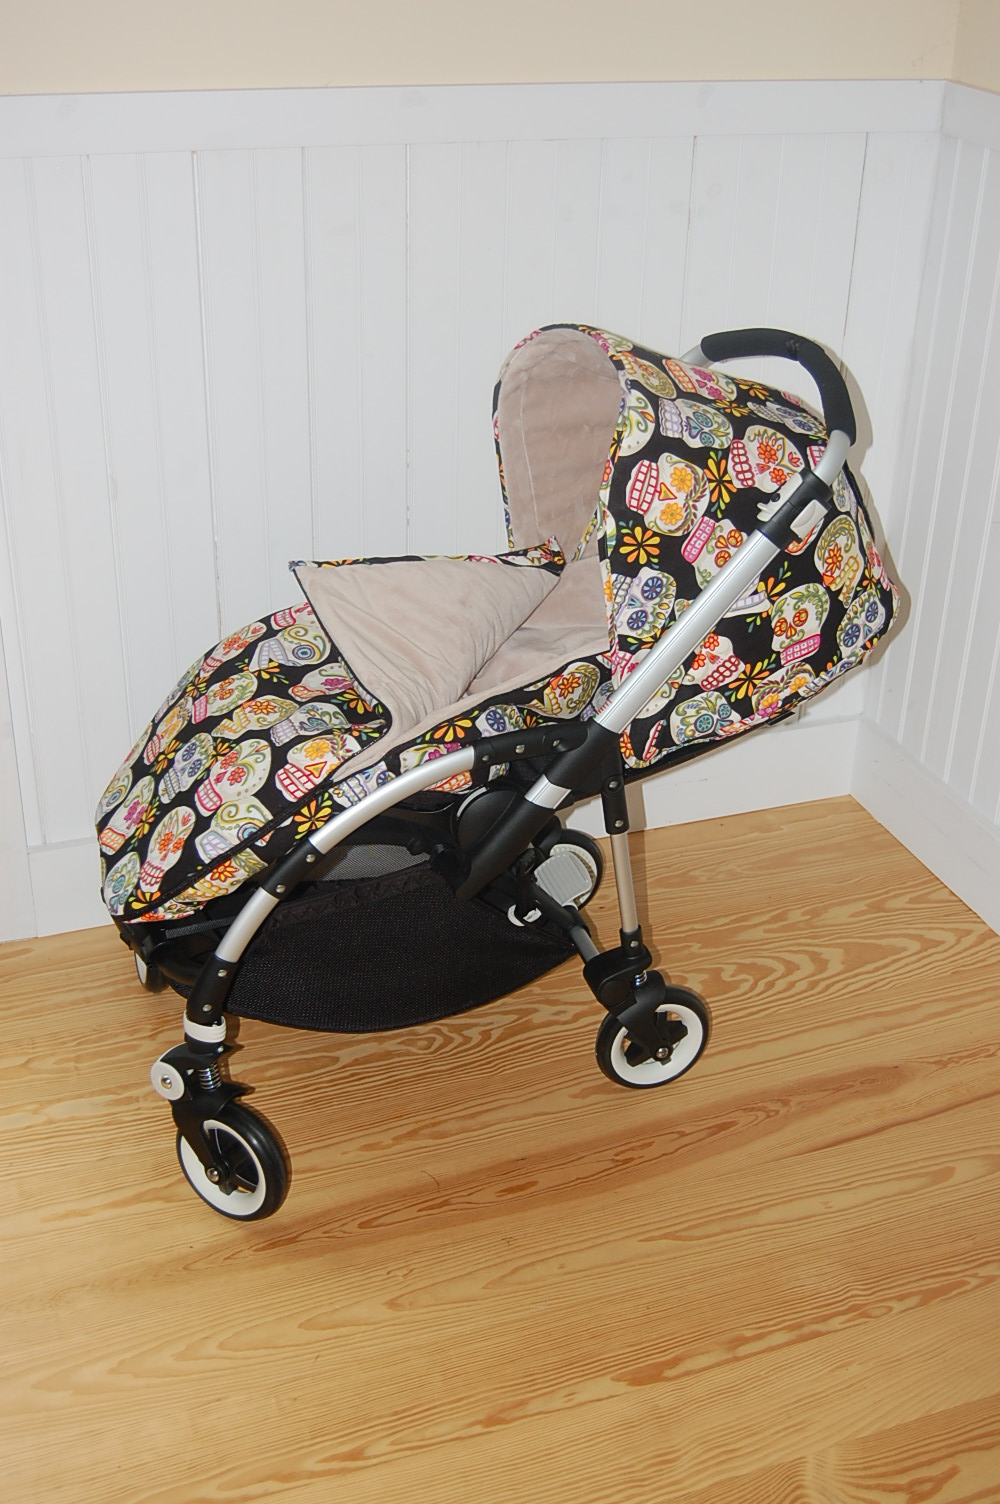 The canopy is created in the candy skulls and lined in latte solid minky. The footmuff is also created in candy skulls and lined with latte minky. & Maine Baby Treats - Custom Bugaboo Stroller Covers: Candy Skulls ...